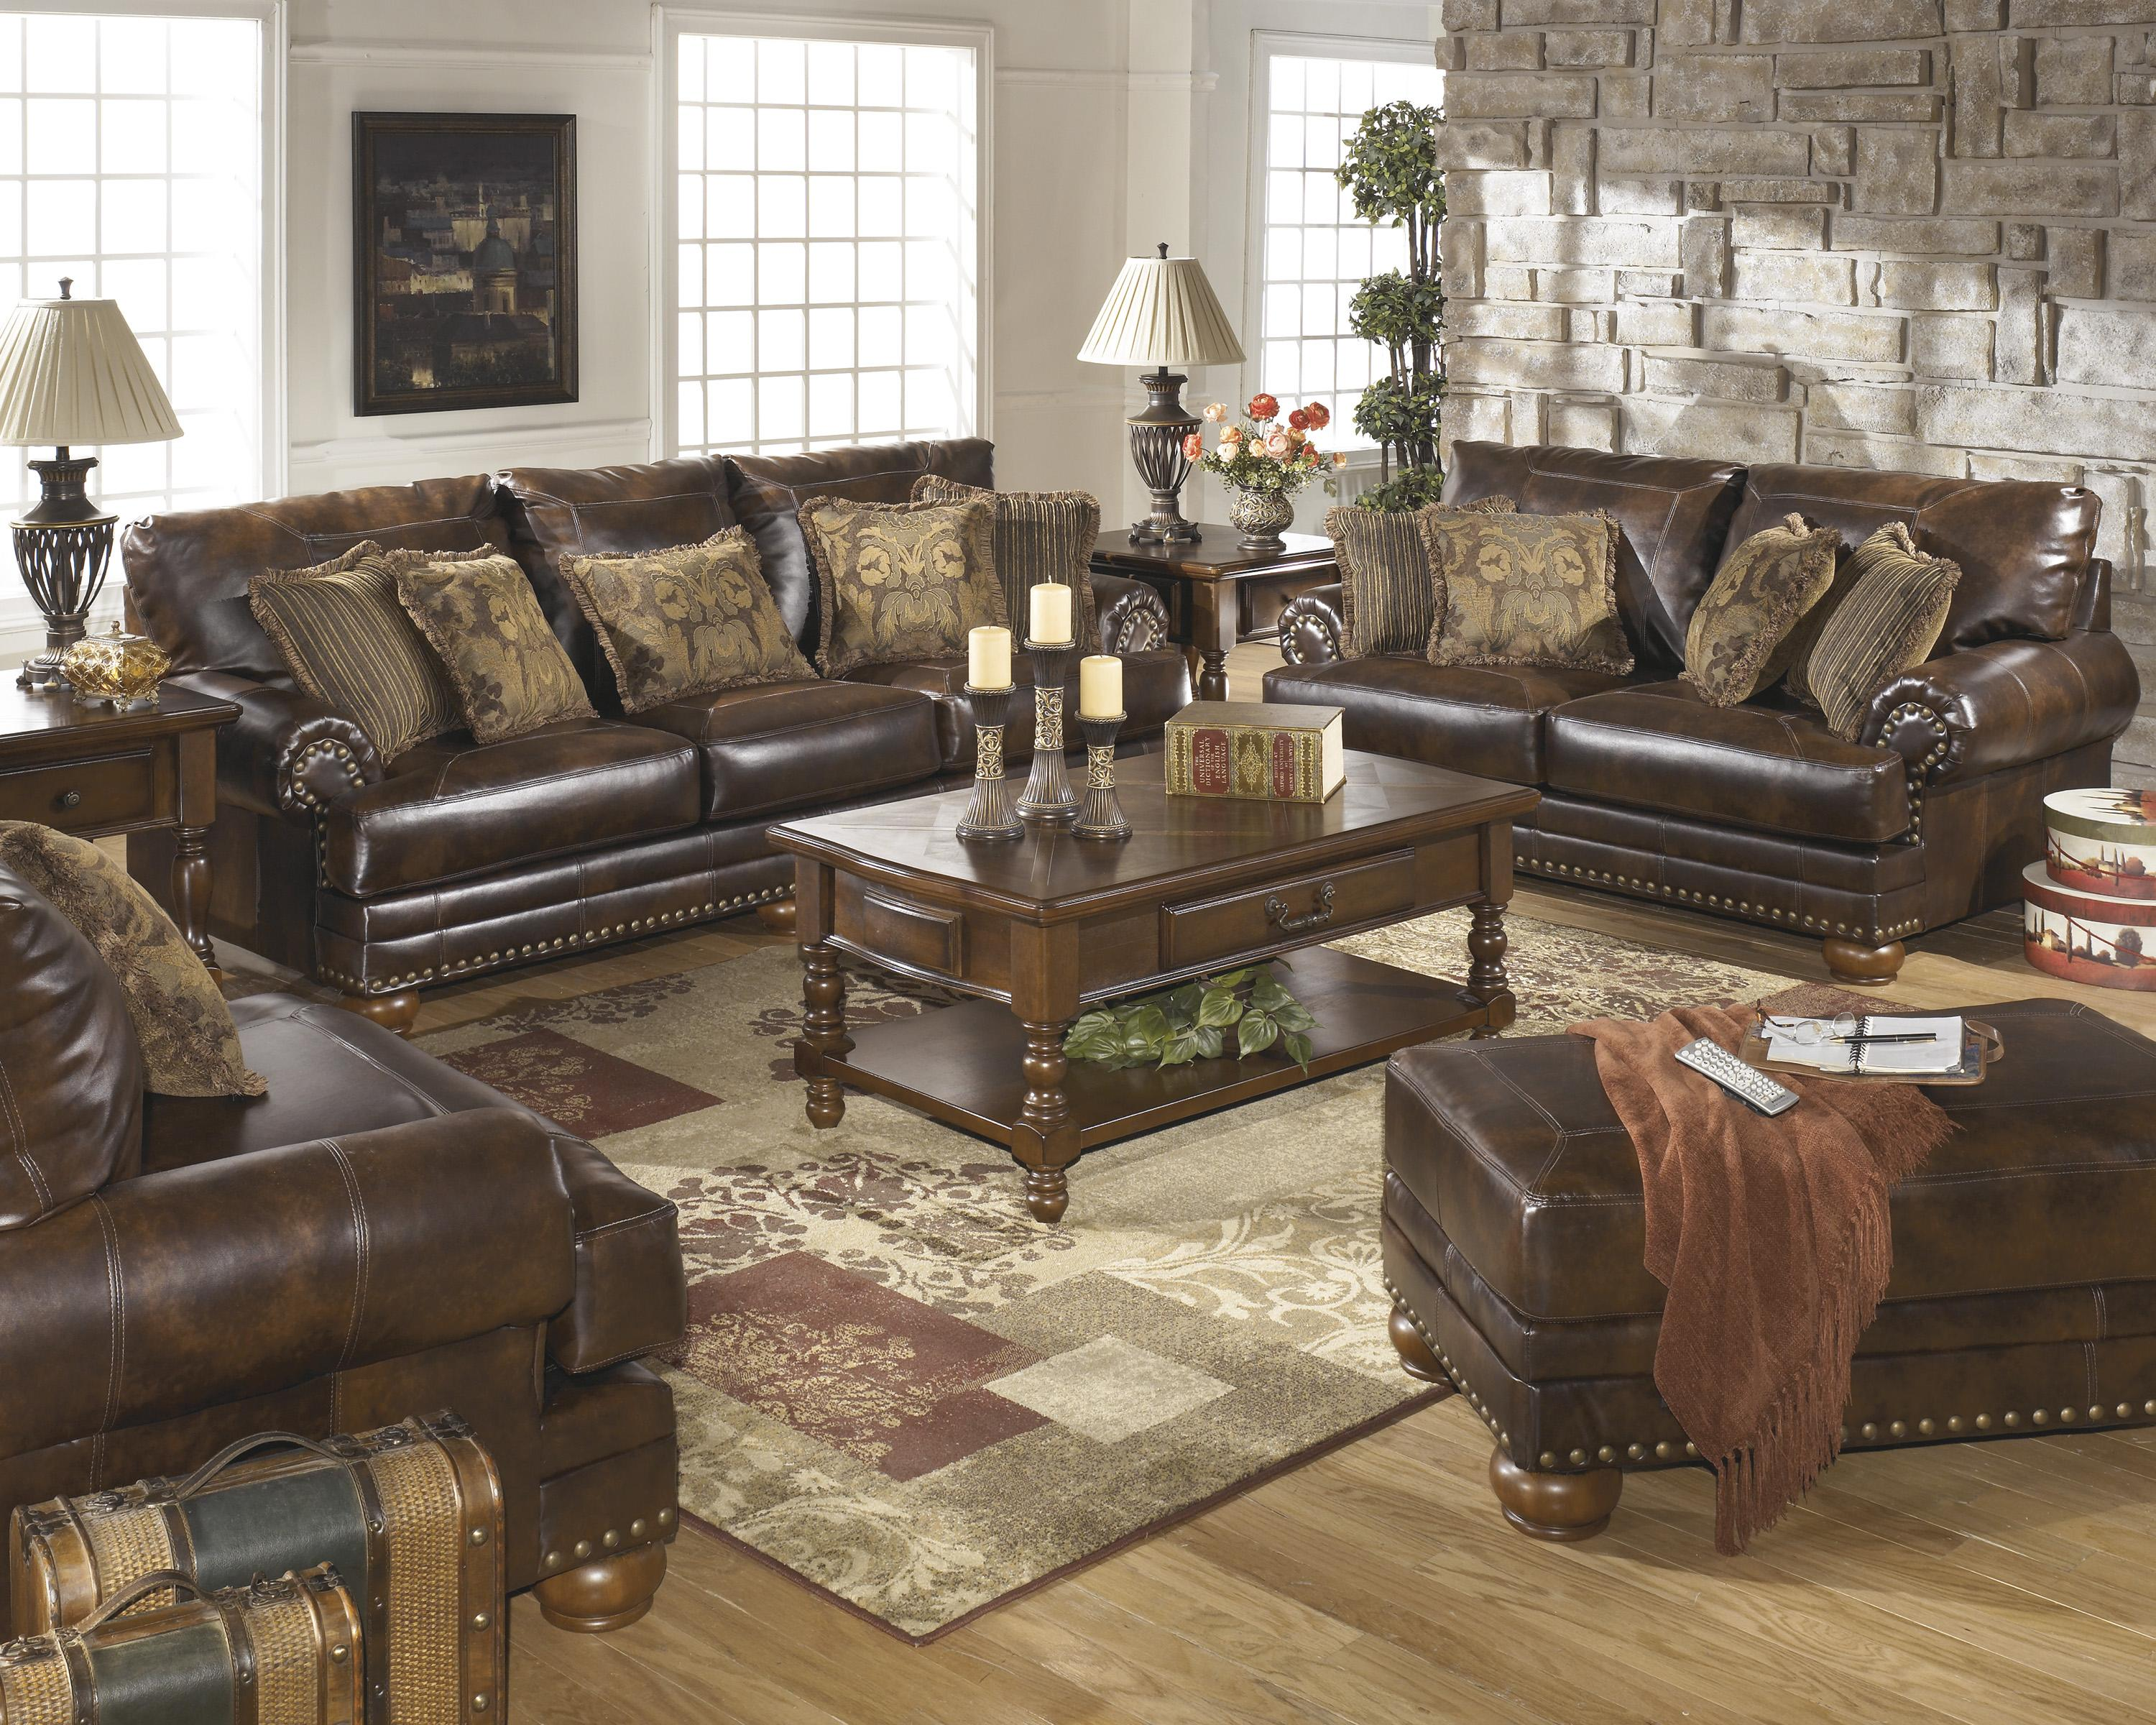 Signature Design by Ashley Chaling DuraBlend® - Antique Stationary Living Room Group - Item Number: 99200 Living Room Group 2